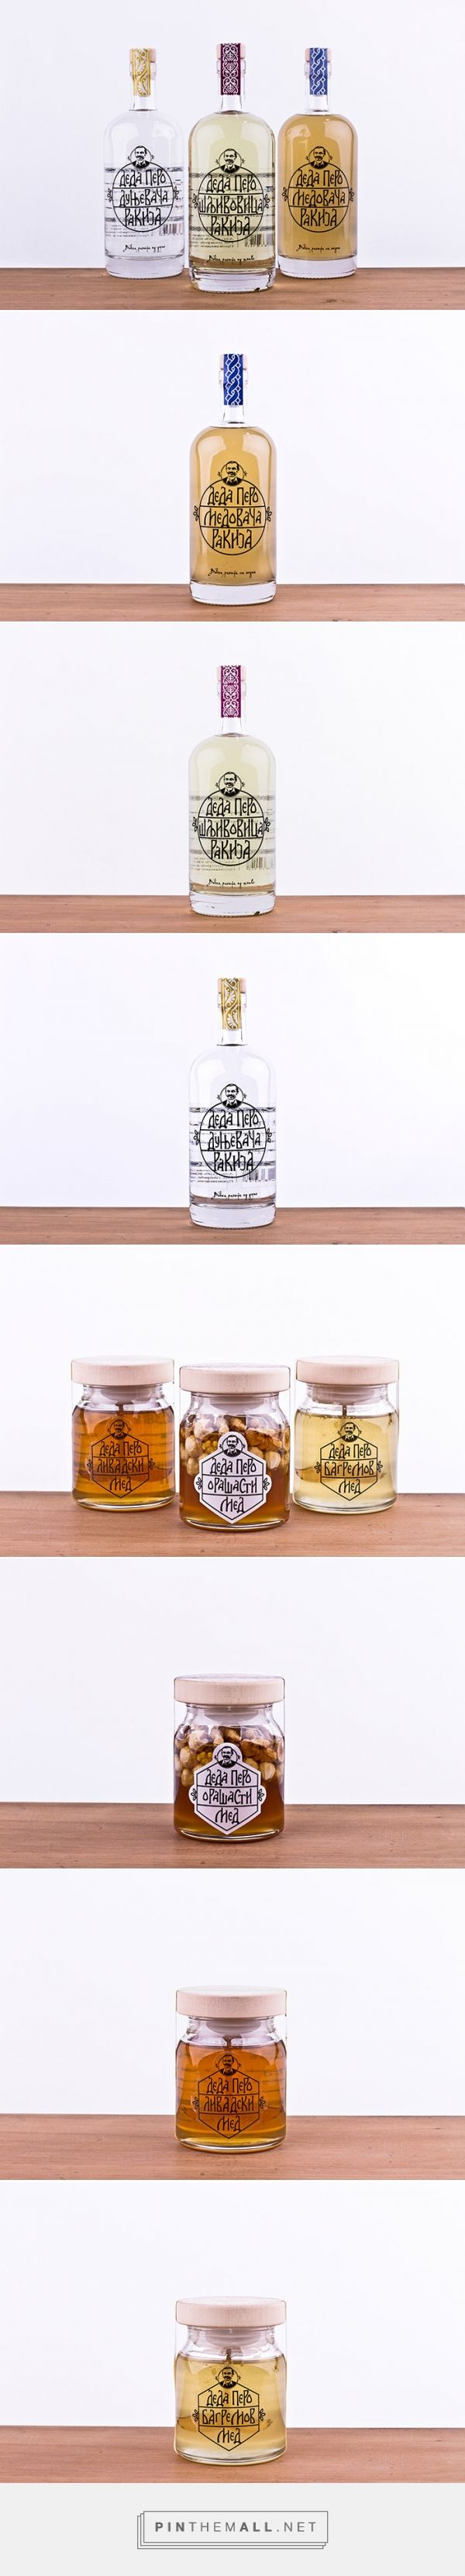 Deda Pero rakia and honey by Atelje Studio. Source: Daily Package Design Inspiration. Pin curated by#SFields99 #packaging #design #inspiration #ideas #branding #alcoholic #beverages #honey